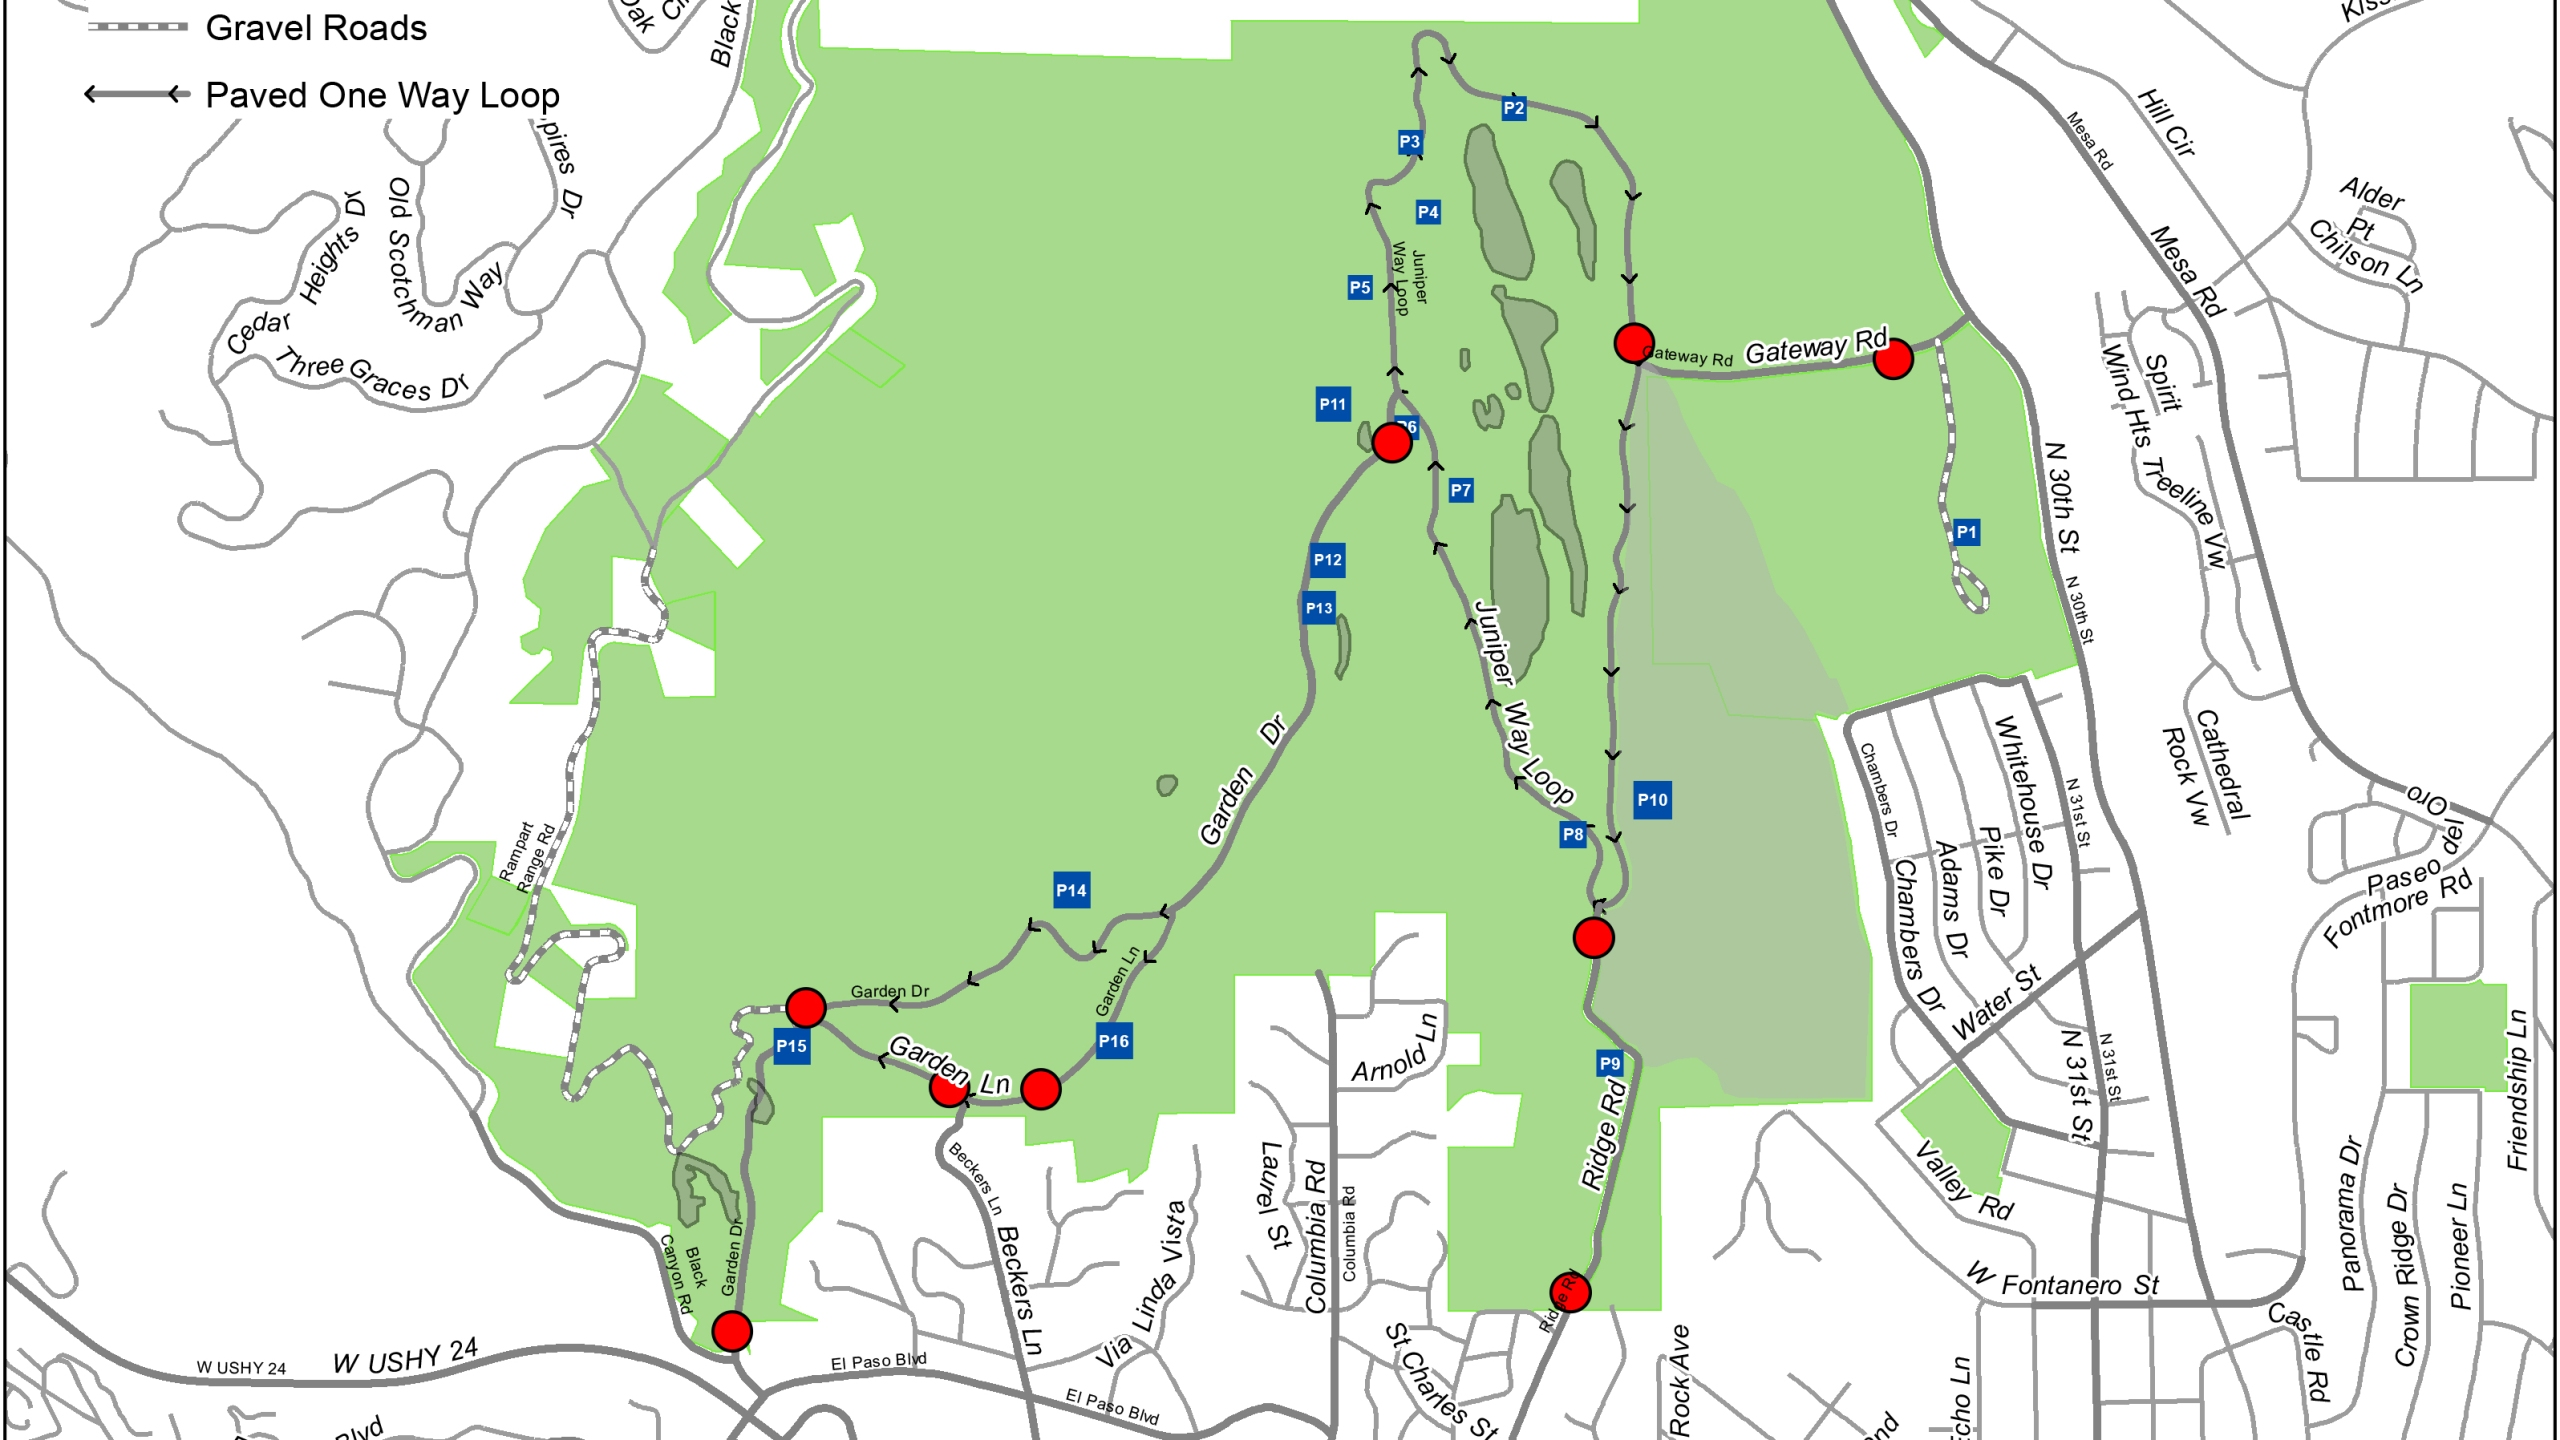 City to install gates at Garden of the Gods park, preventing ... Garden Of The Gods Map on manitou springs map, mesa verde national park map, pine grove furnace state park map, fountain formation map, carson park map, pikes peak map, shawnee state forest backpack trail map, nokhu crags map, valley of fire state park map, palmer park map, anza-borrego desert state park map, colorado map, mesa verde cliff dwellings map, chaco culture national historical park map, white tank mountain regional park map, city of rocks national reserve map, manitou incline map, durango map, garden of eden map, spare the air map,